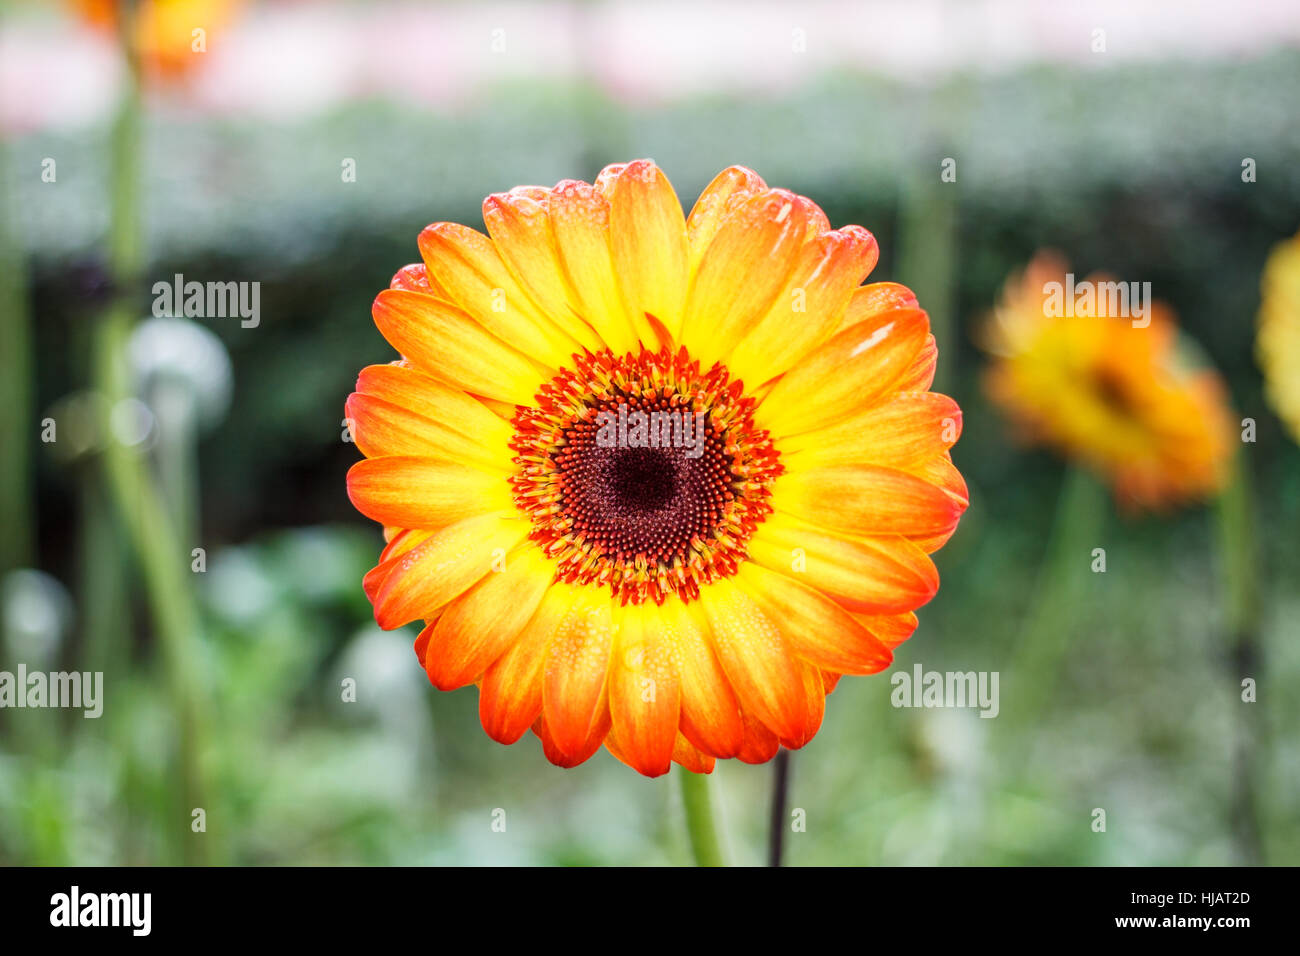 Blooming flower yellow and orange color Stock Photo